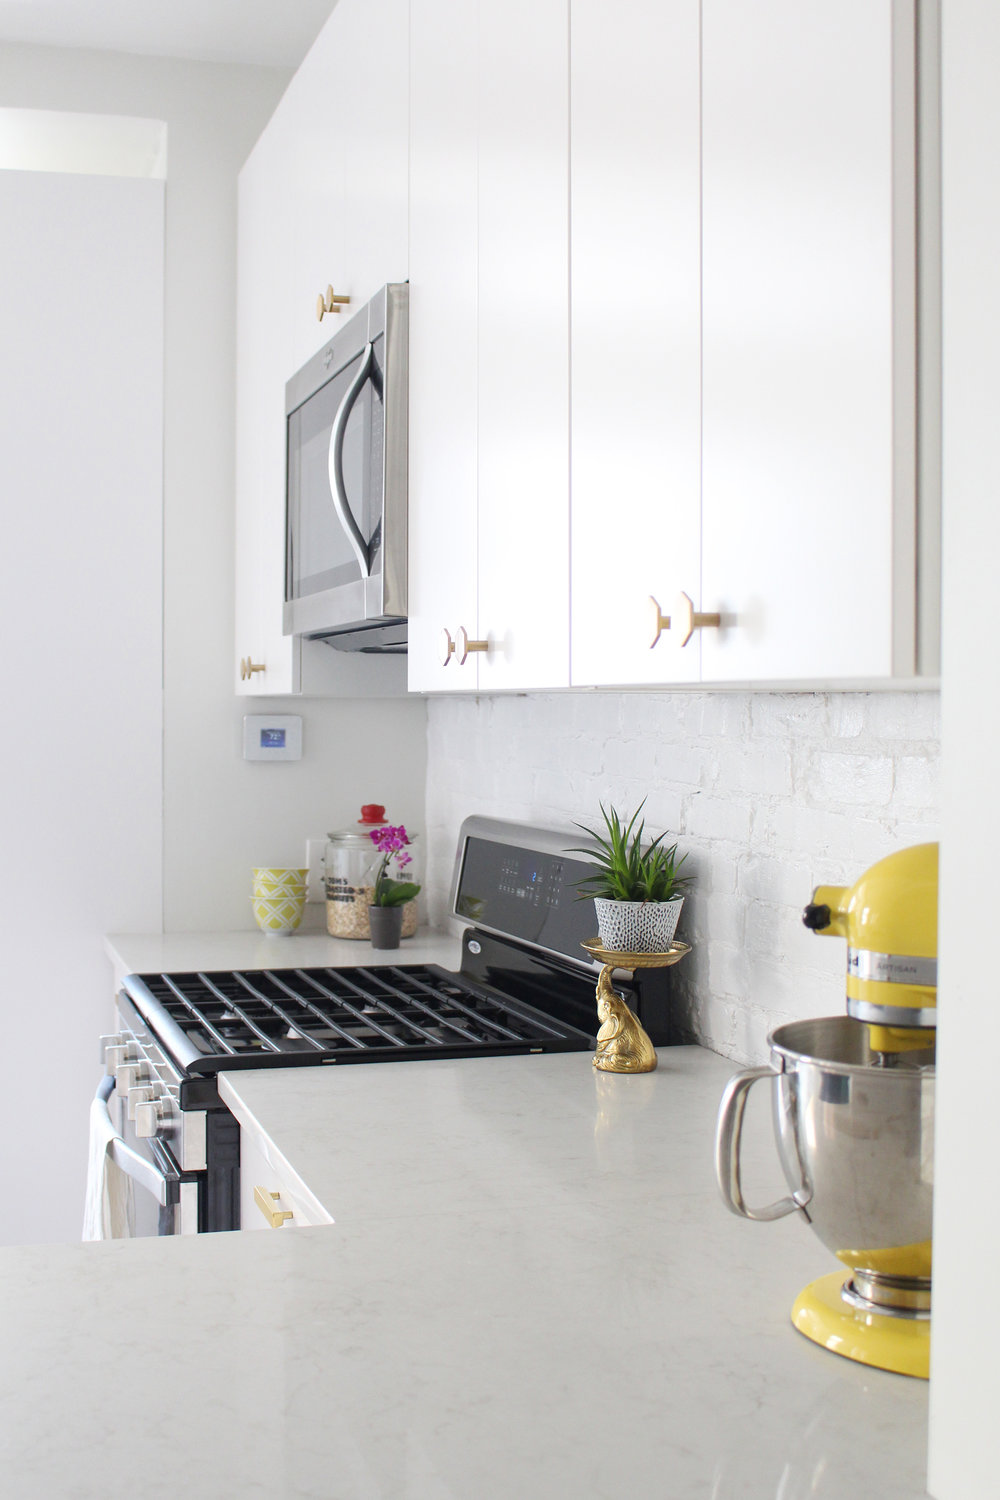 Modern-White-Kitchen-Renovation-Ikea-Sektion-30.jpg